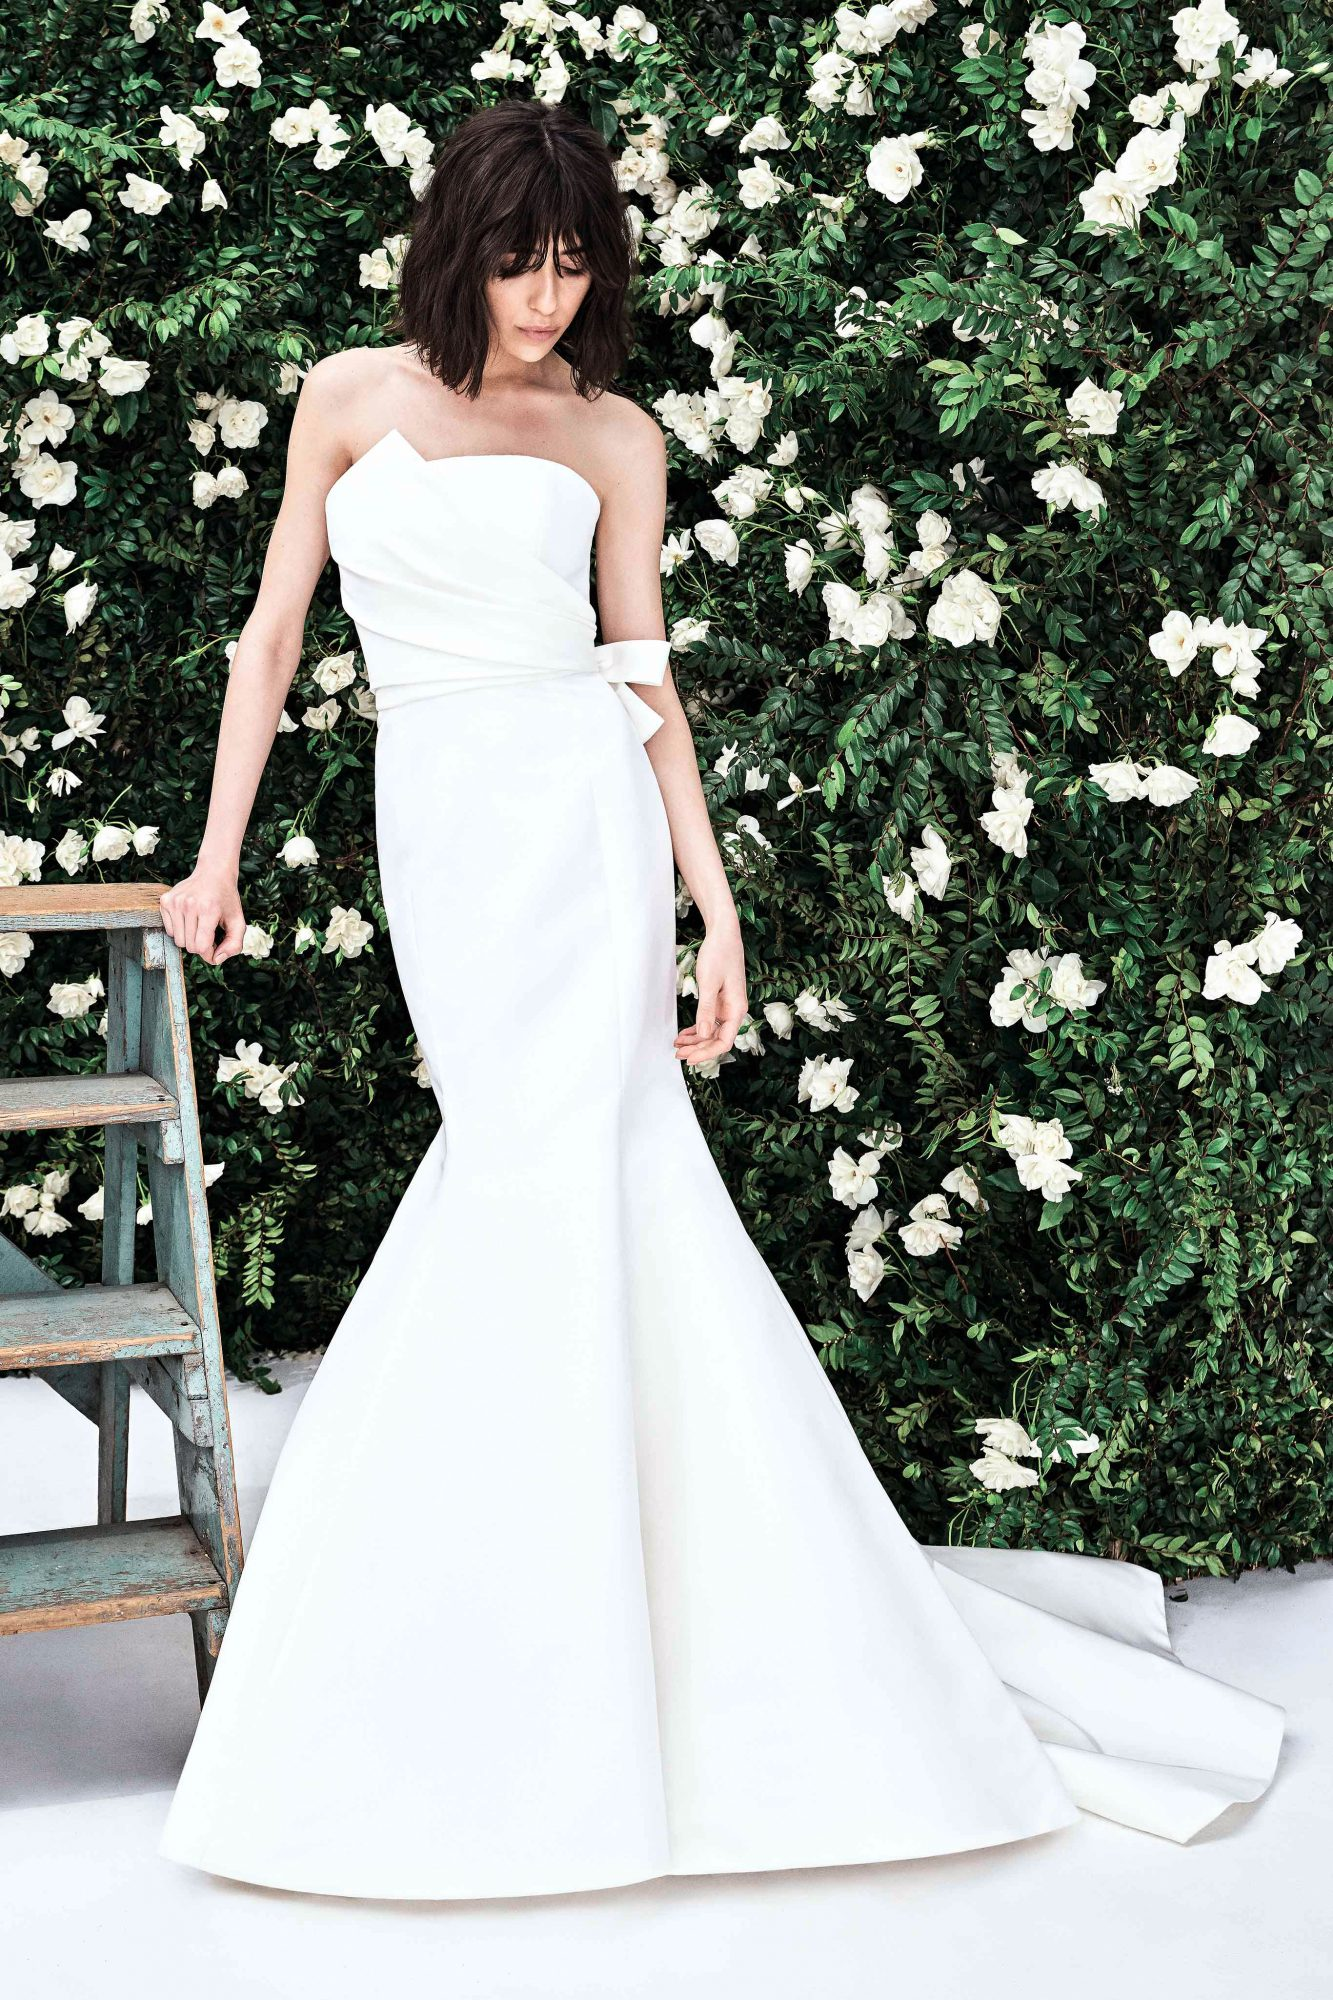 Strapless mermaid wedding dress with asymmetrical draped bodice and bow at waist